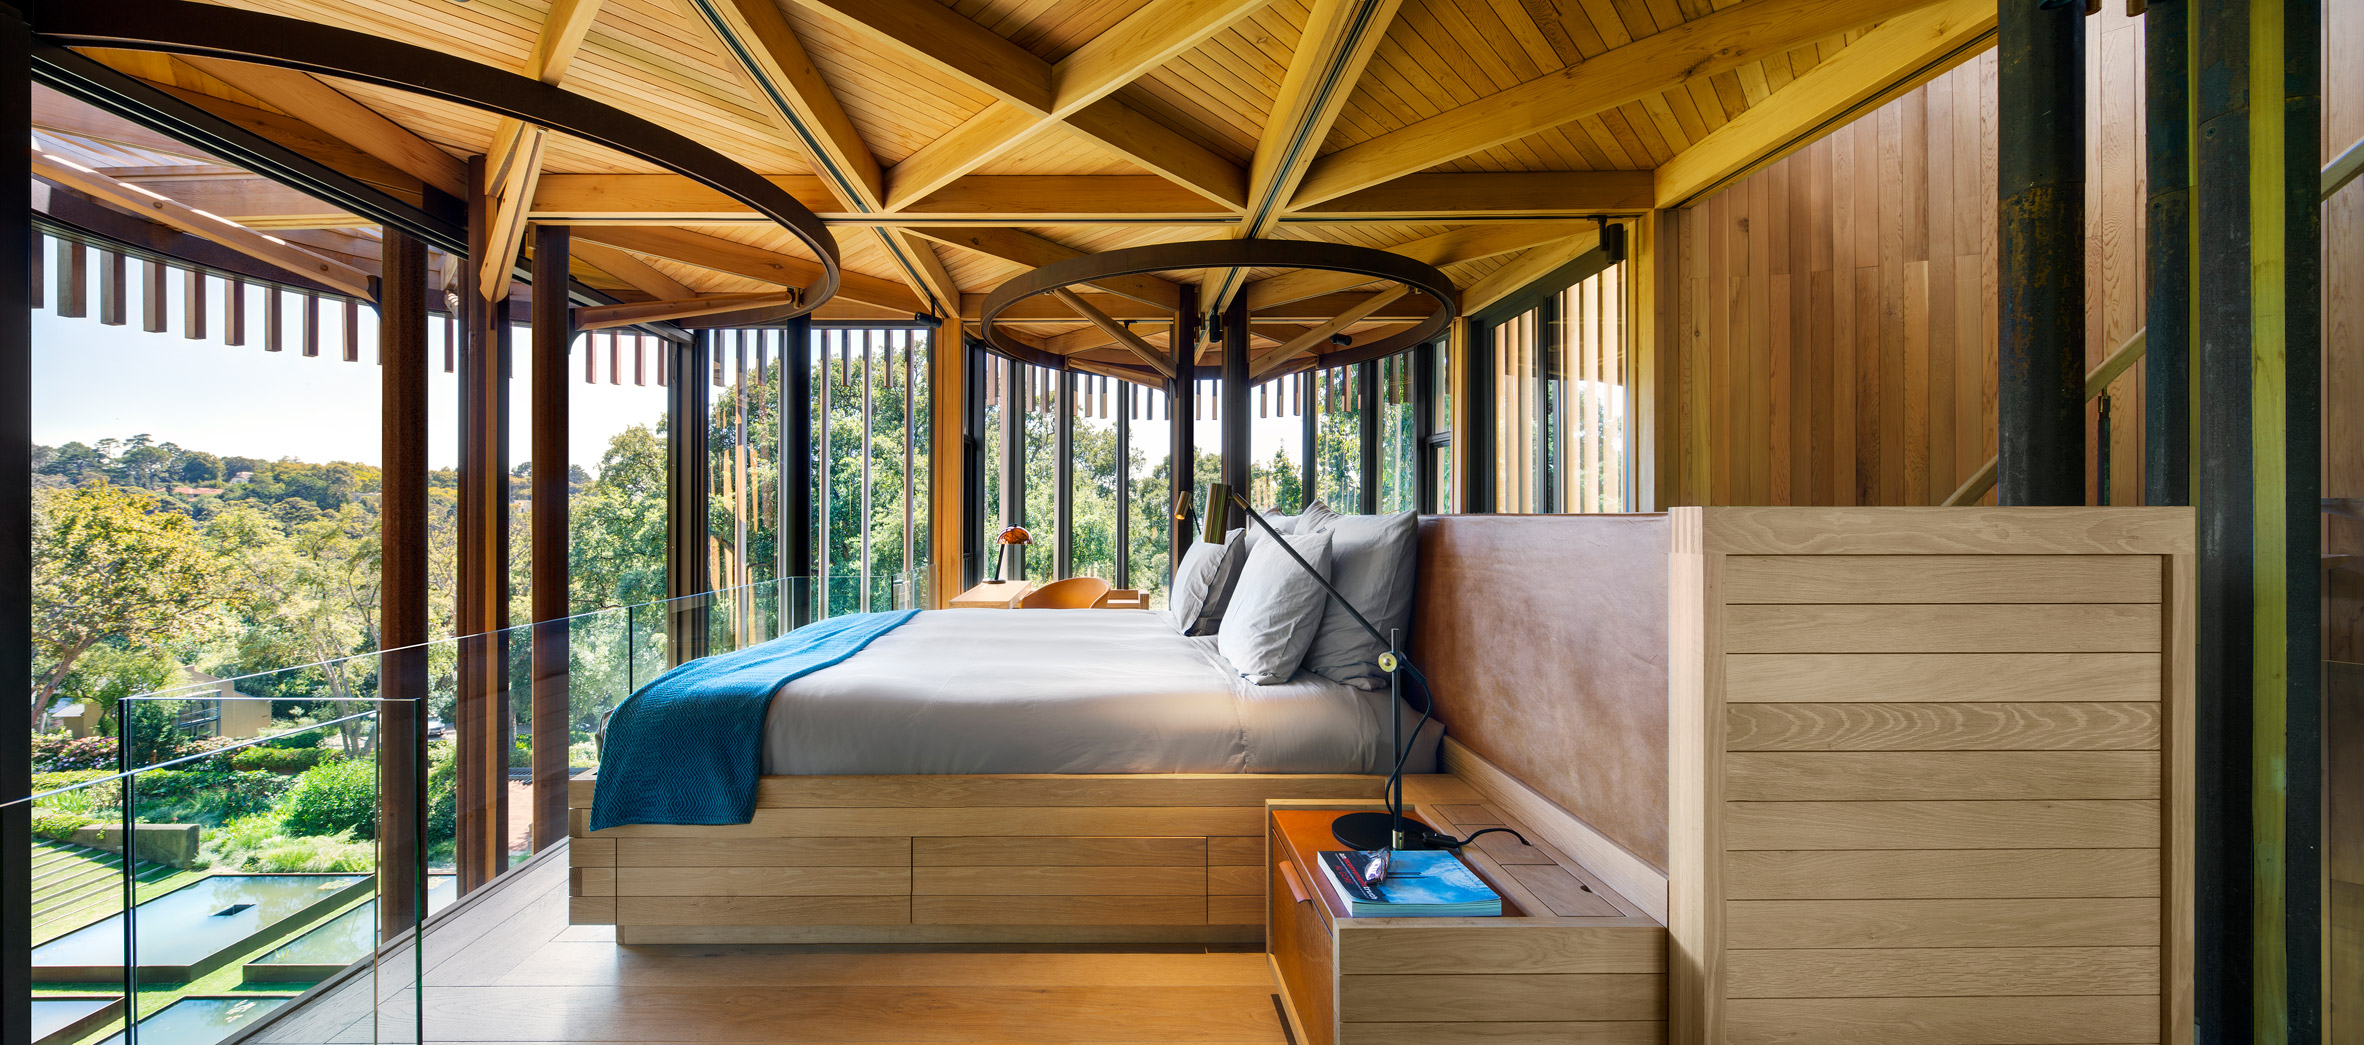 paarman-tree-house-by-mv-architecture-residential_dezeen_2364_col_5.jpg